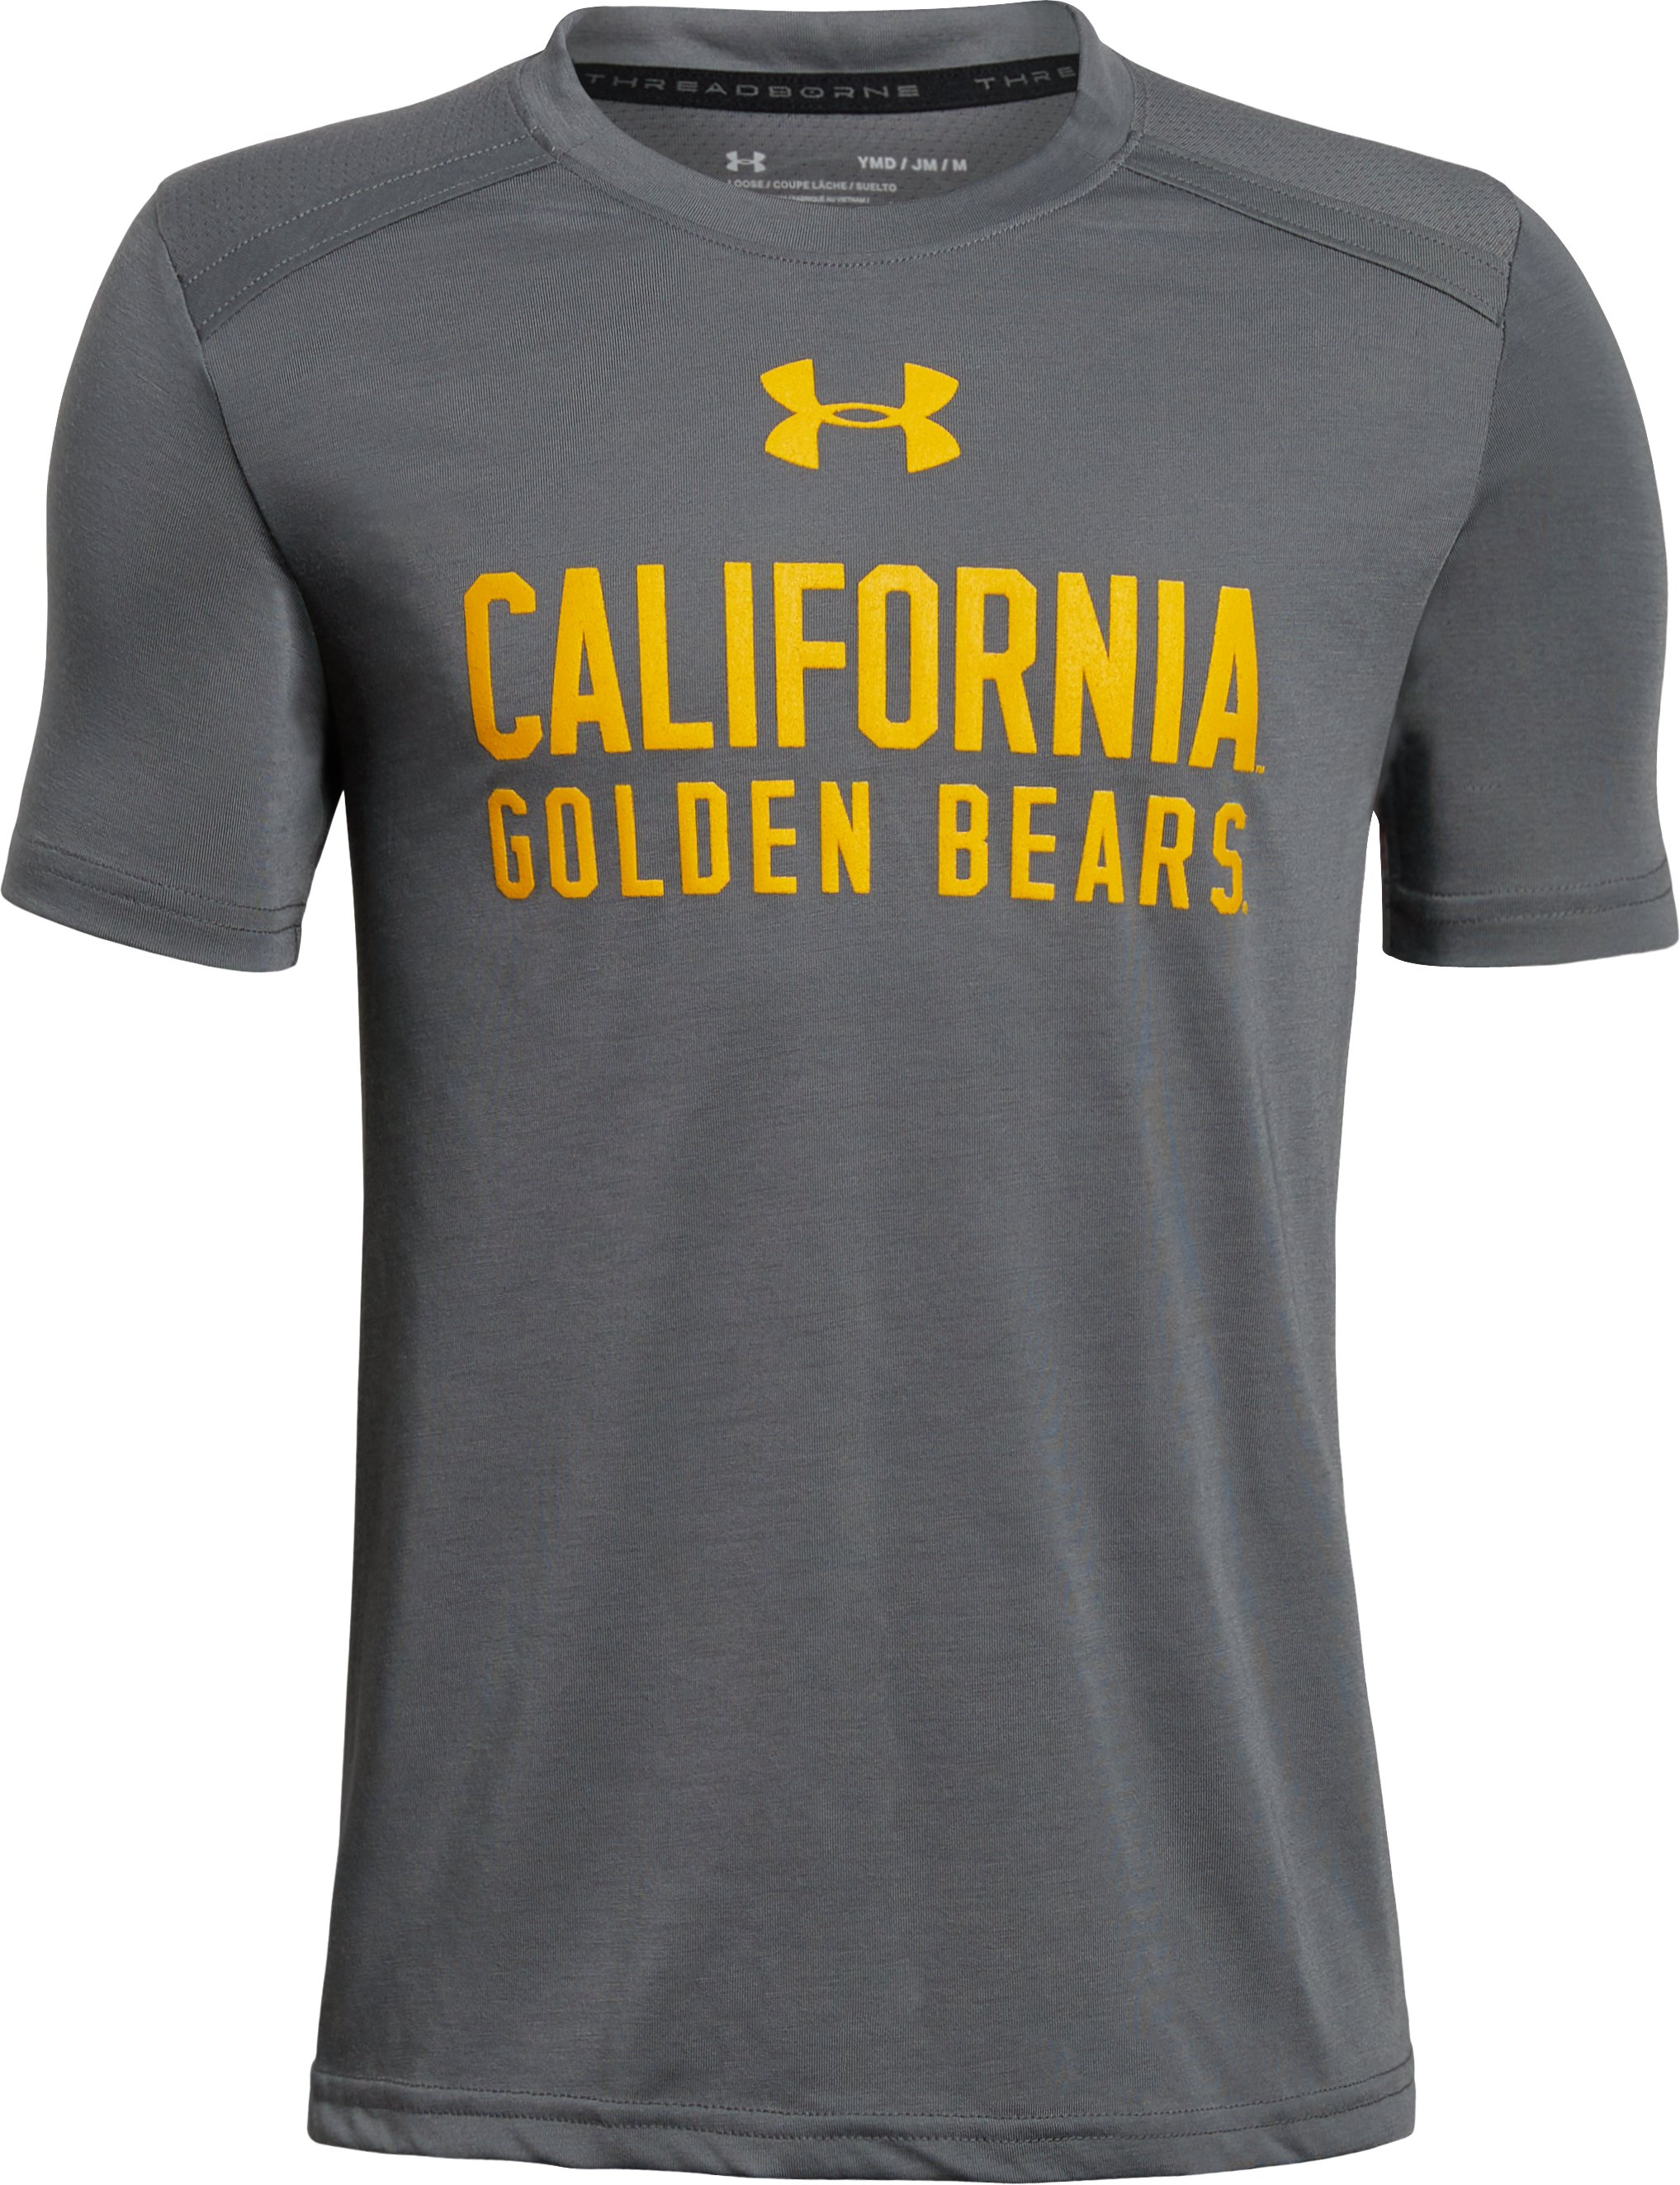 Boys' Cal Bears T-Shirt, Graphite